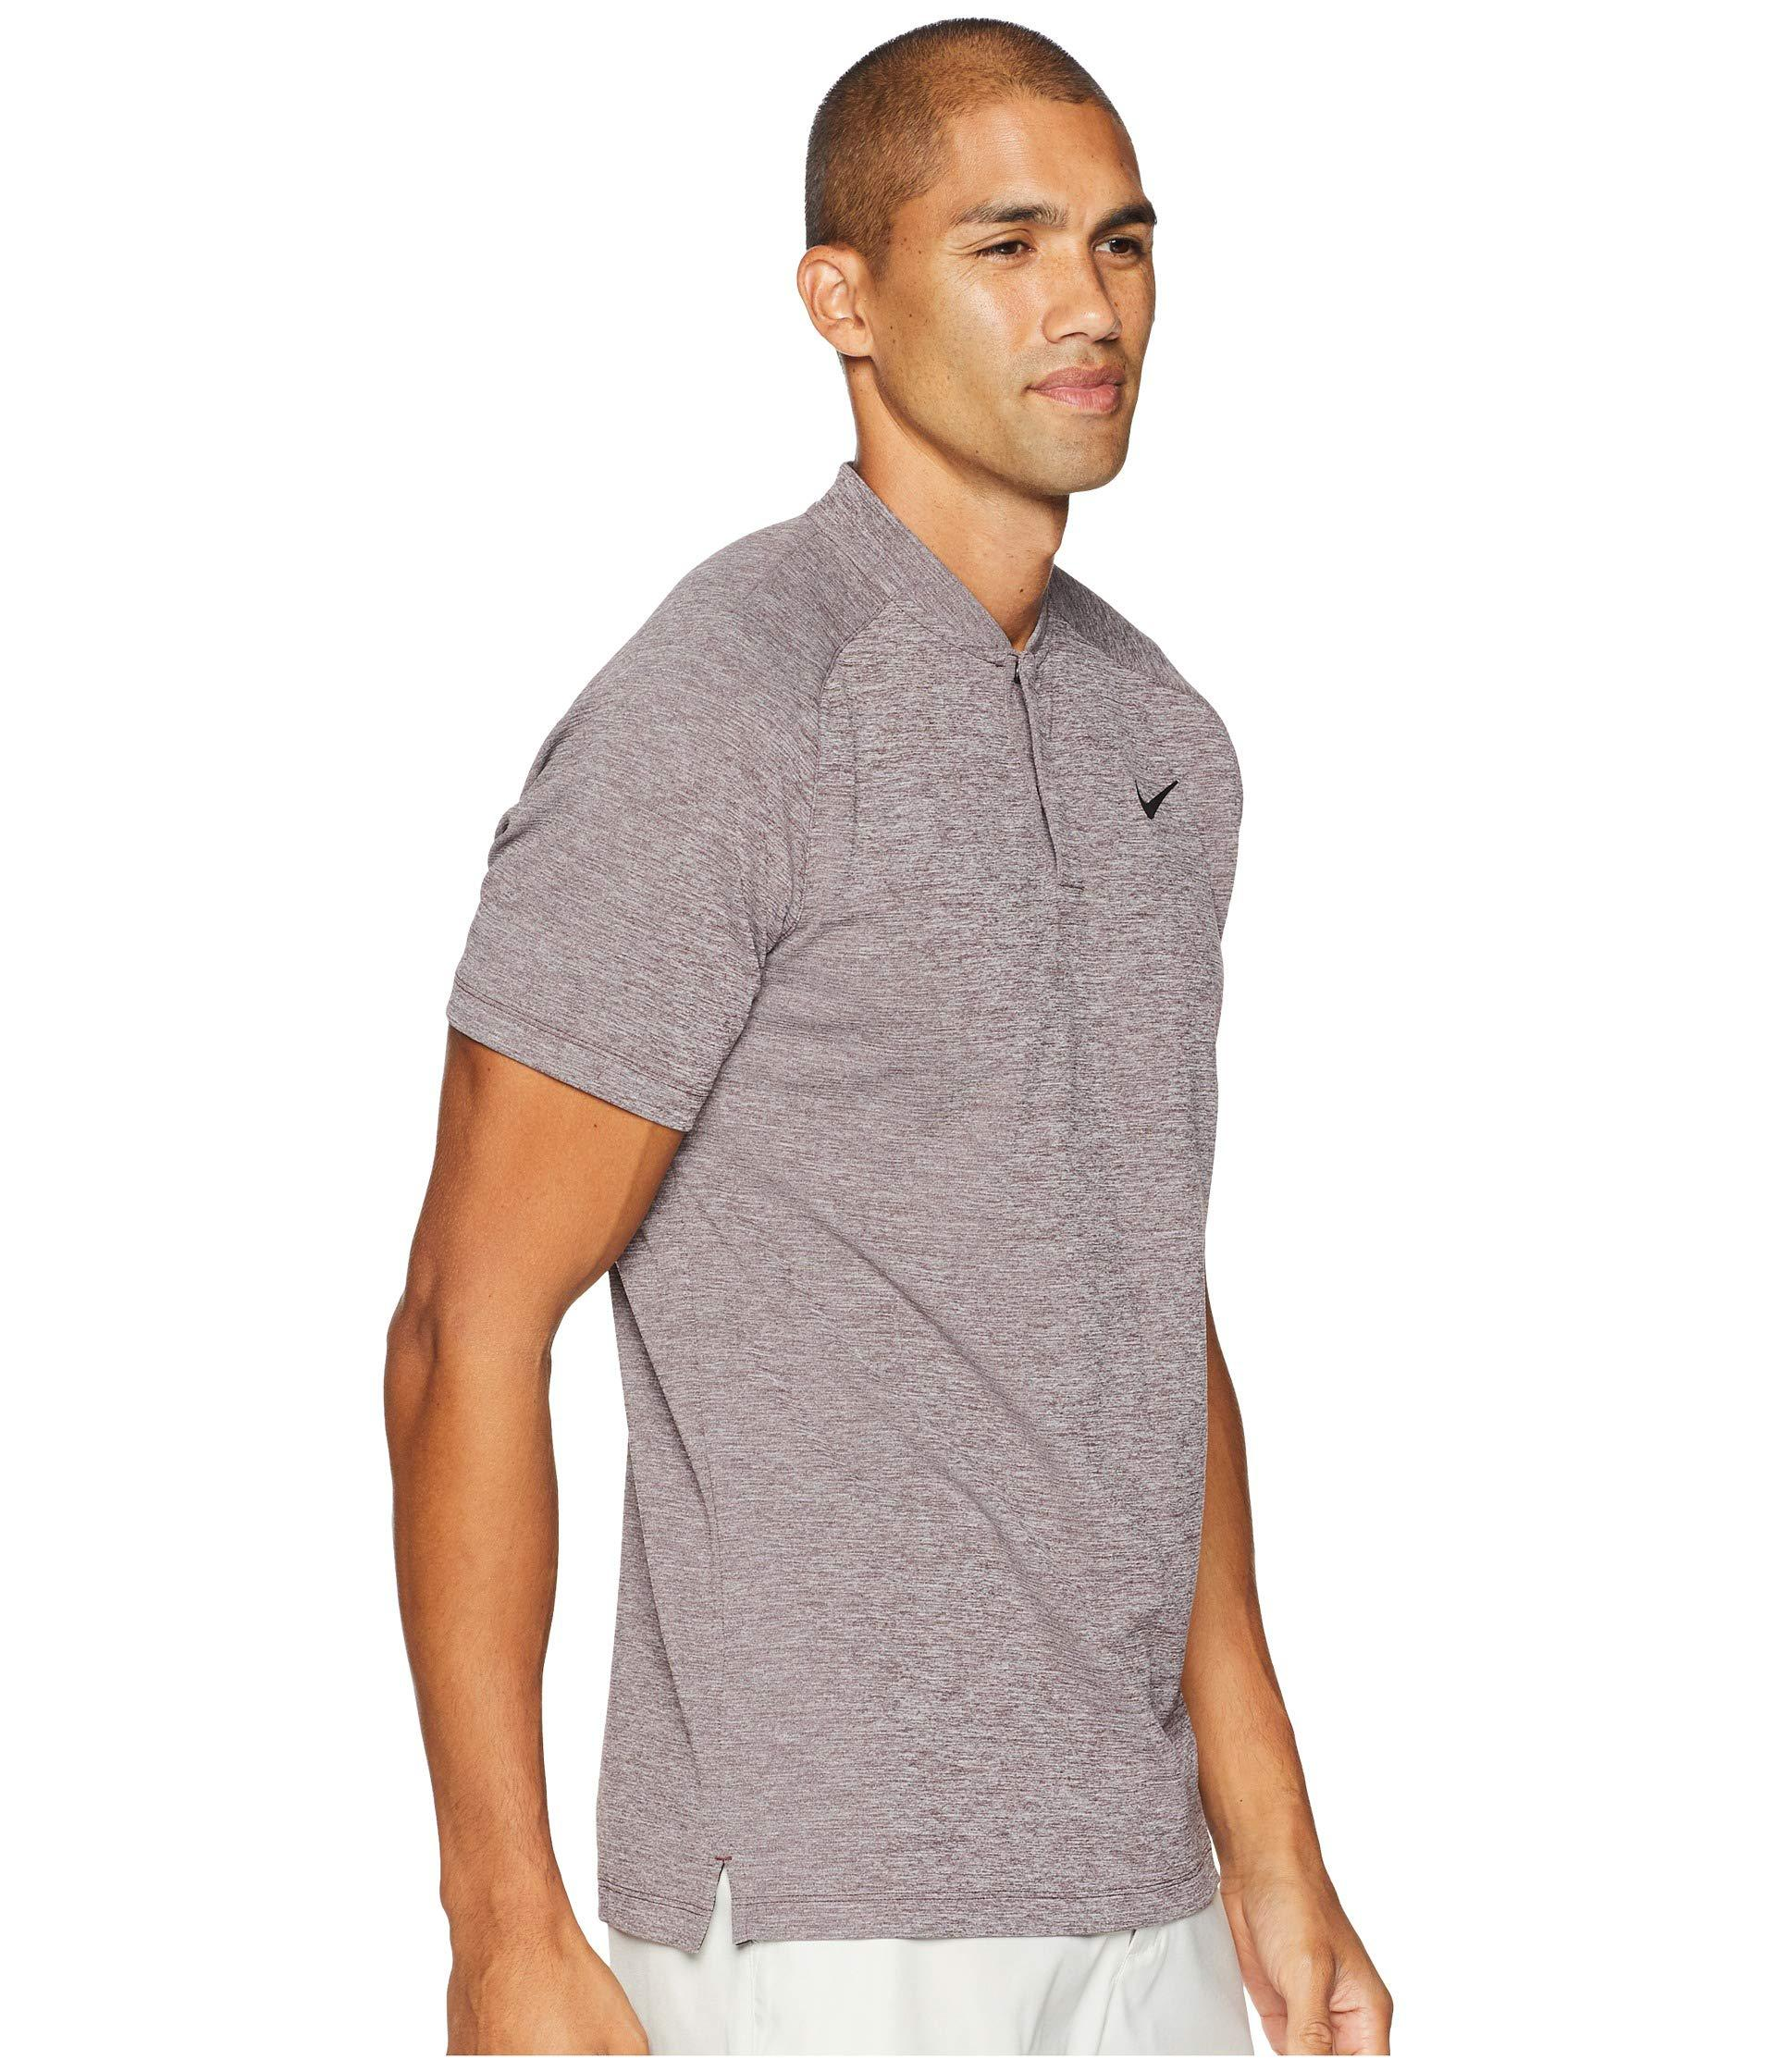 c813b2a6 Lyst - Nike Aeroreact Momentum Polo Slim in Gray for Men